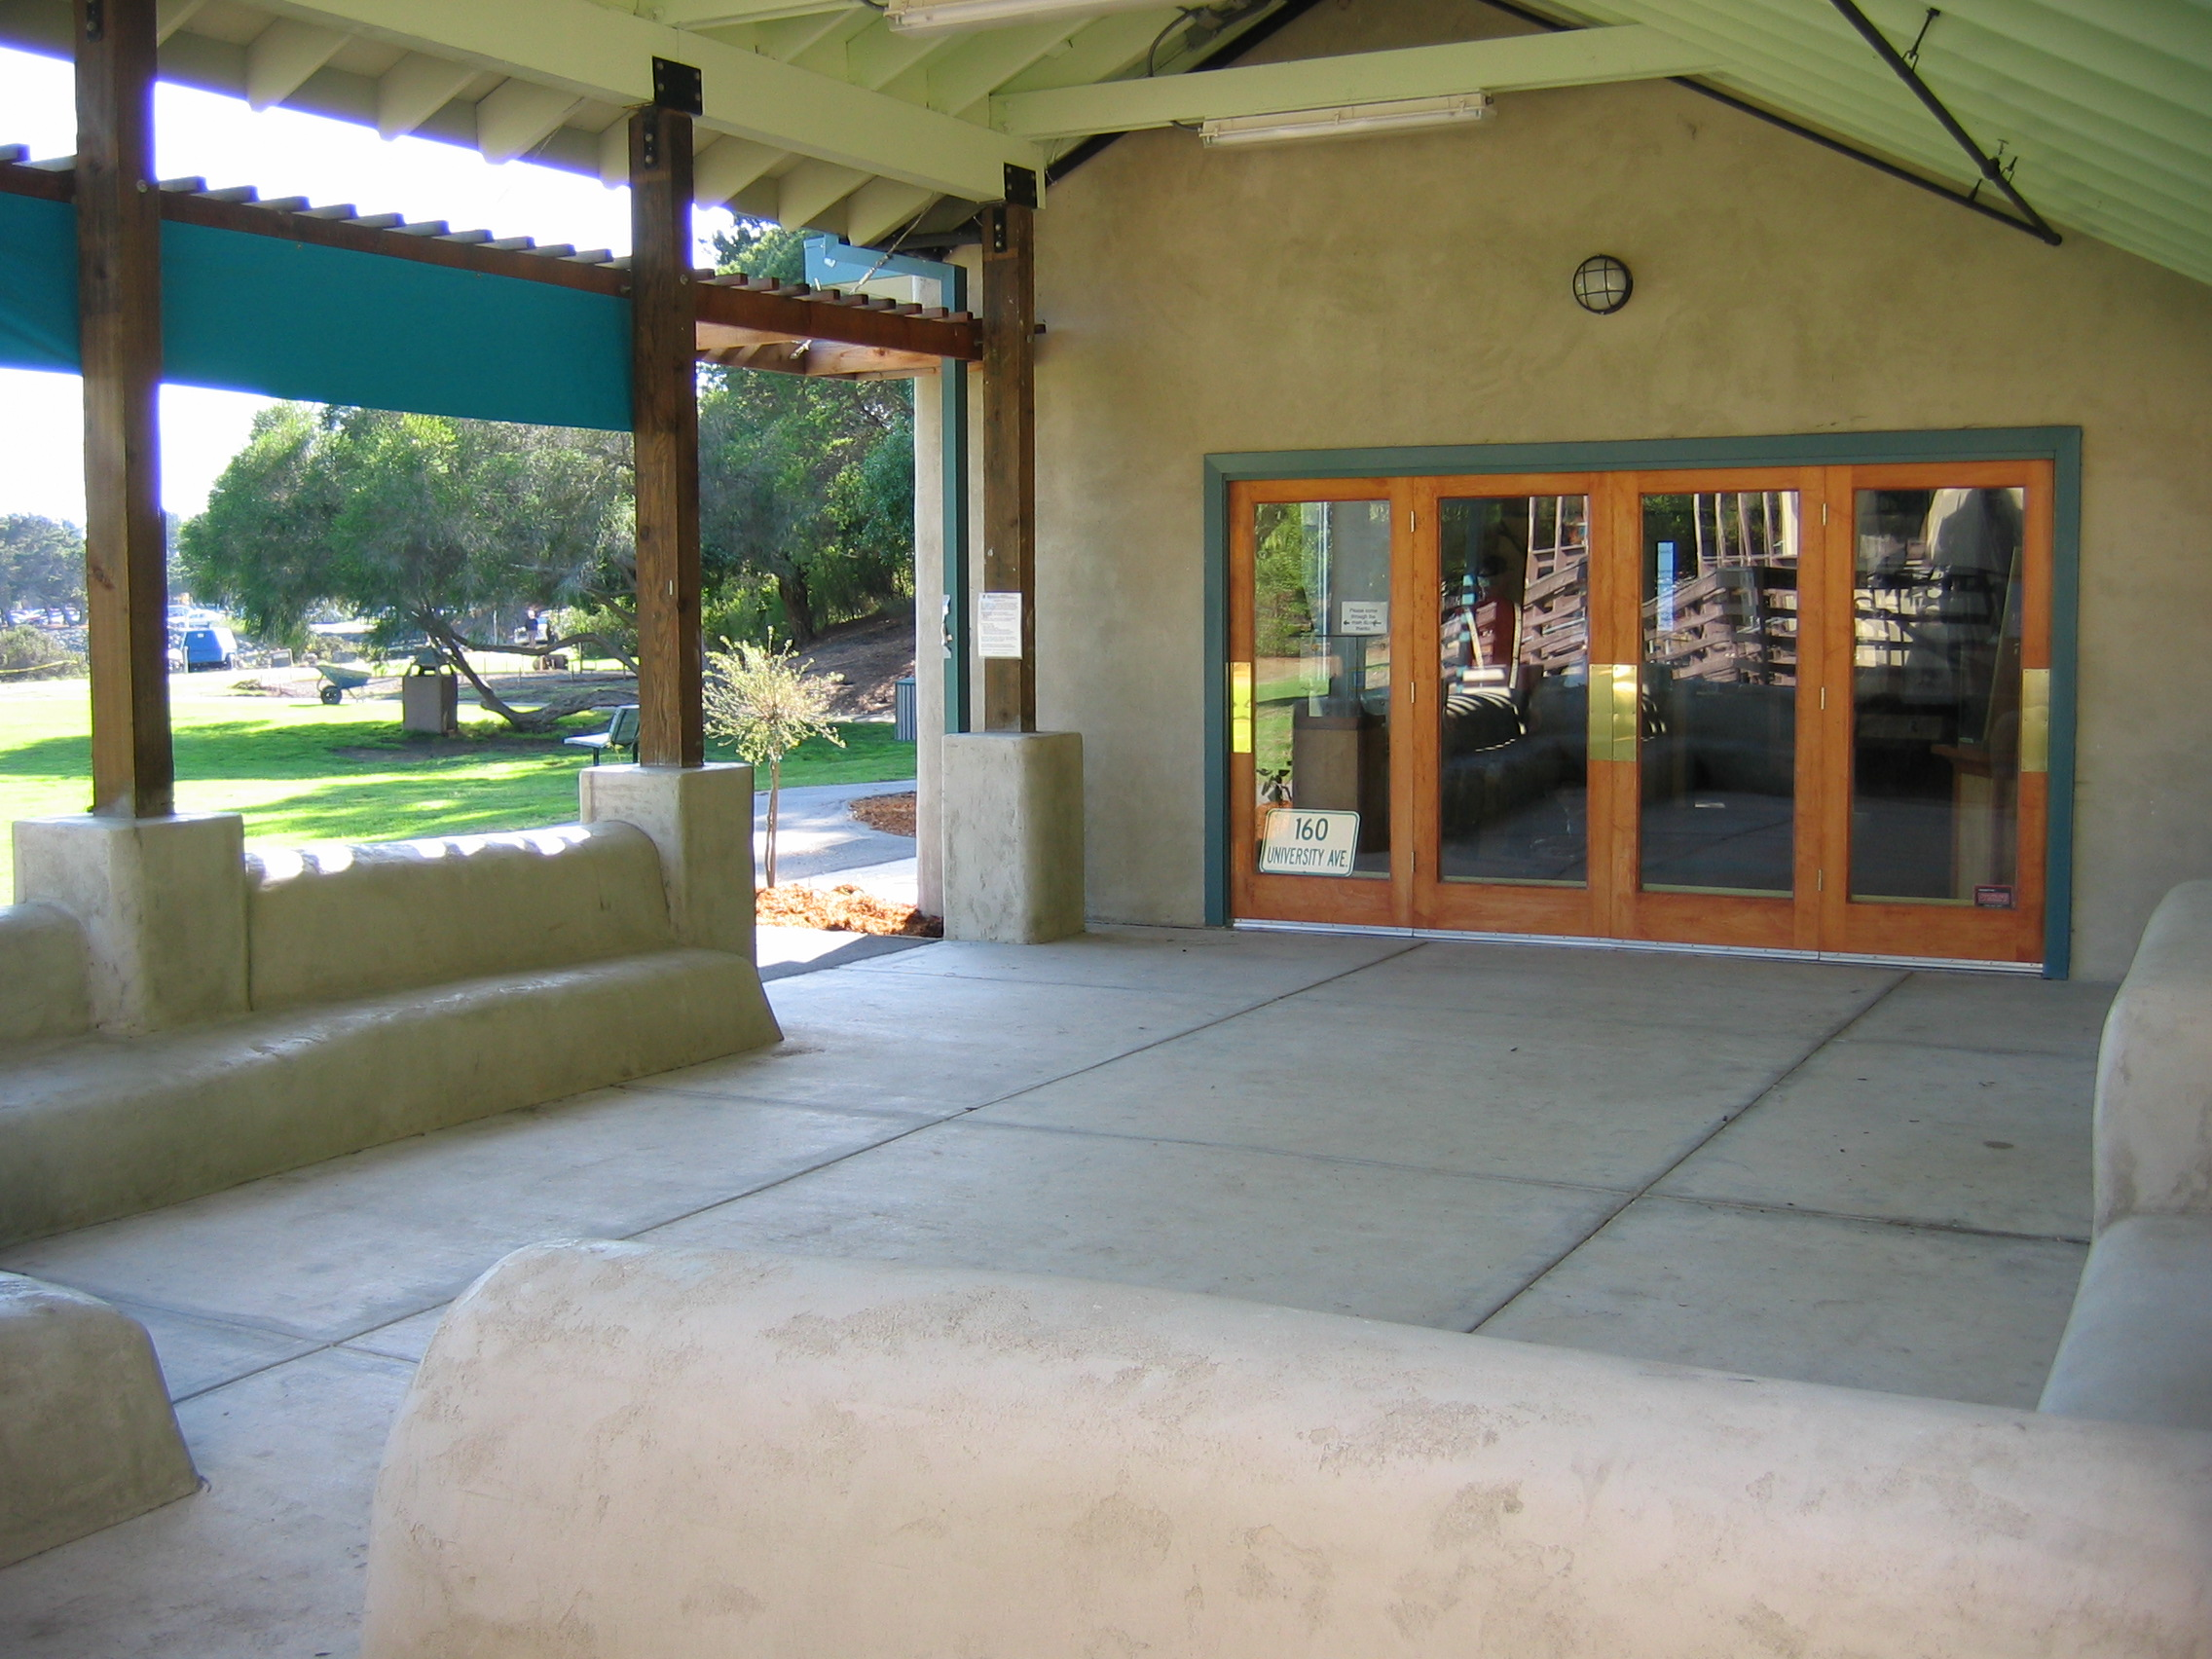 Strawbale seating in the outdoor classroom